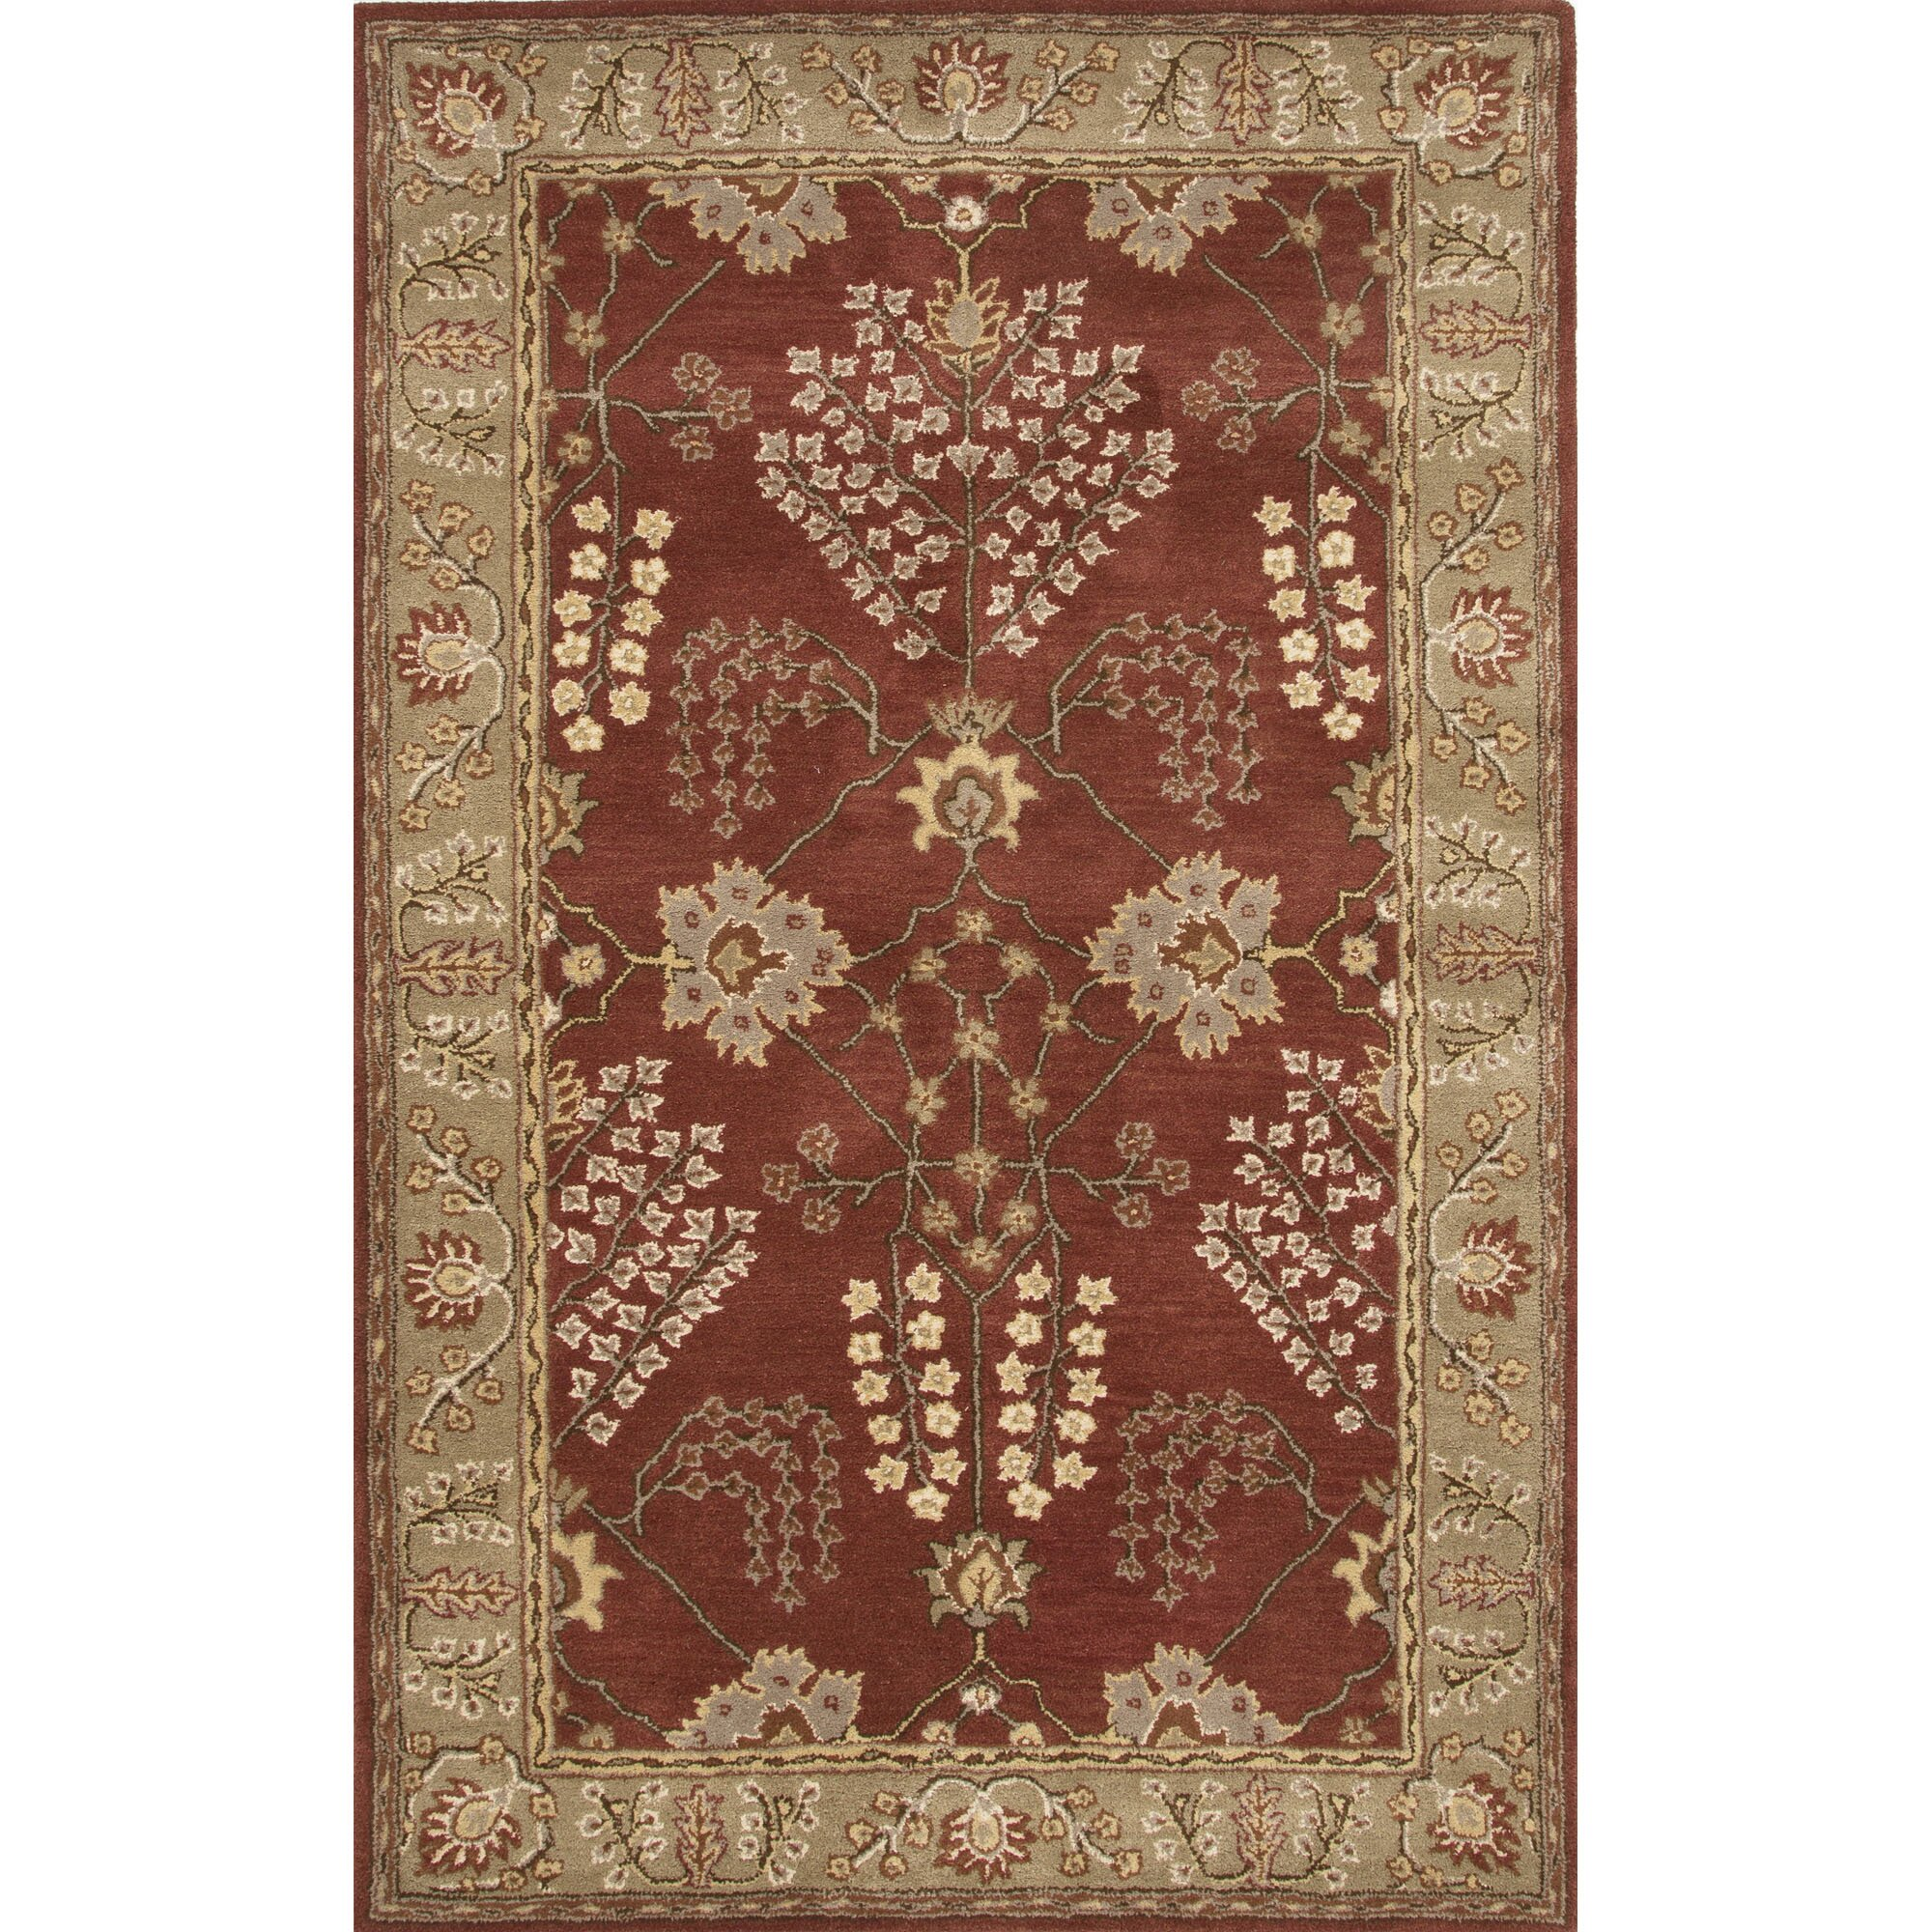 Dog Eating Wool Rug: JaipurLiving Poeme Wool Hand Tufted Red/Ivory Area Rug